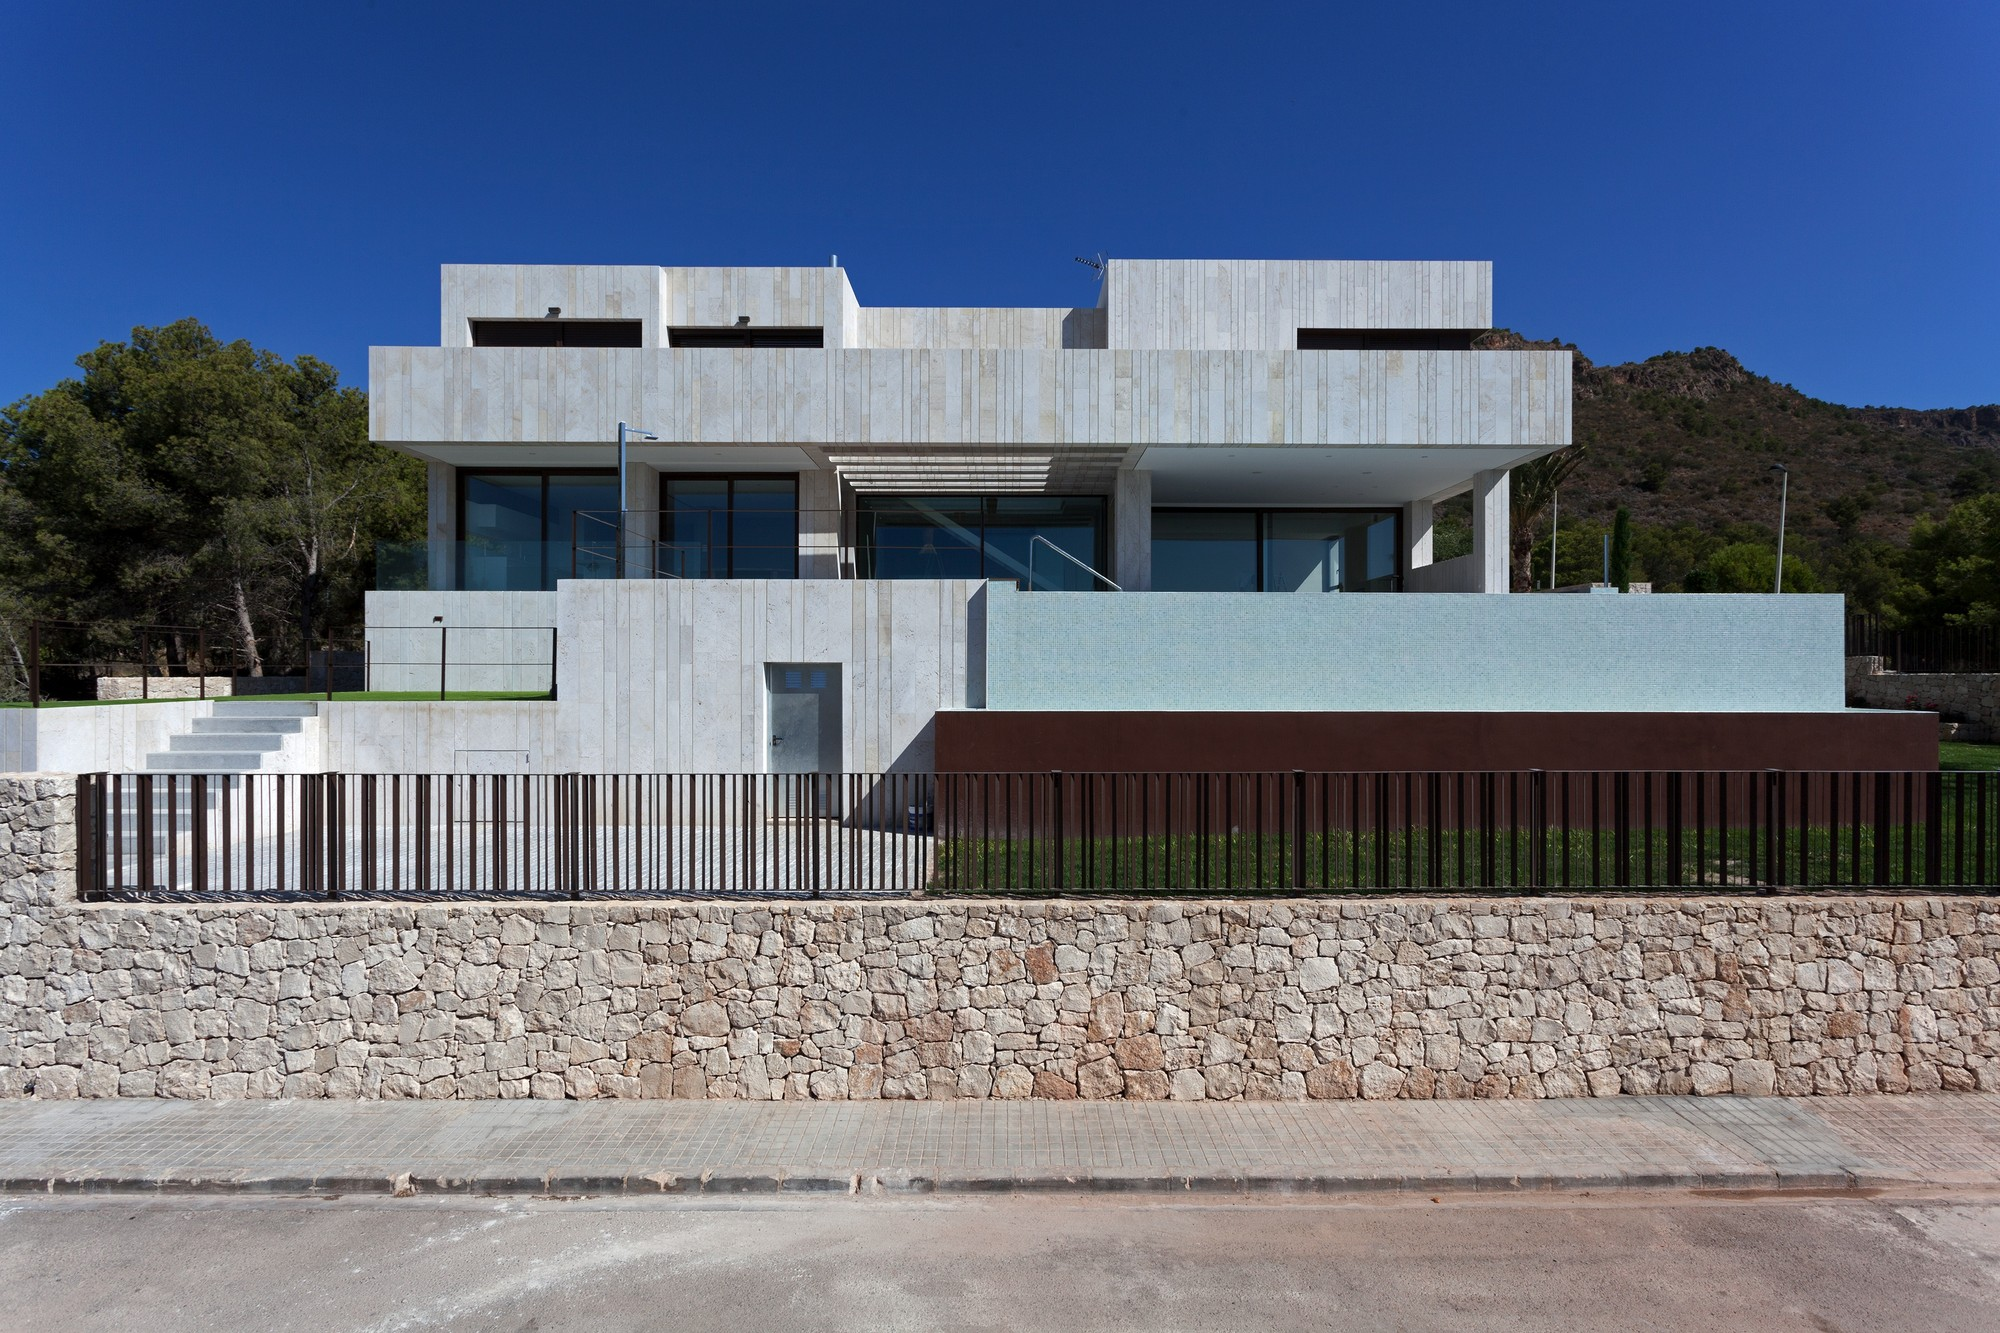 Gallery of monasterios house antonio altarriba comes 2 for House front side wall design